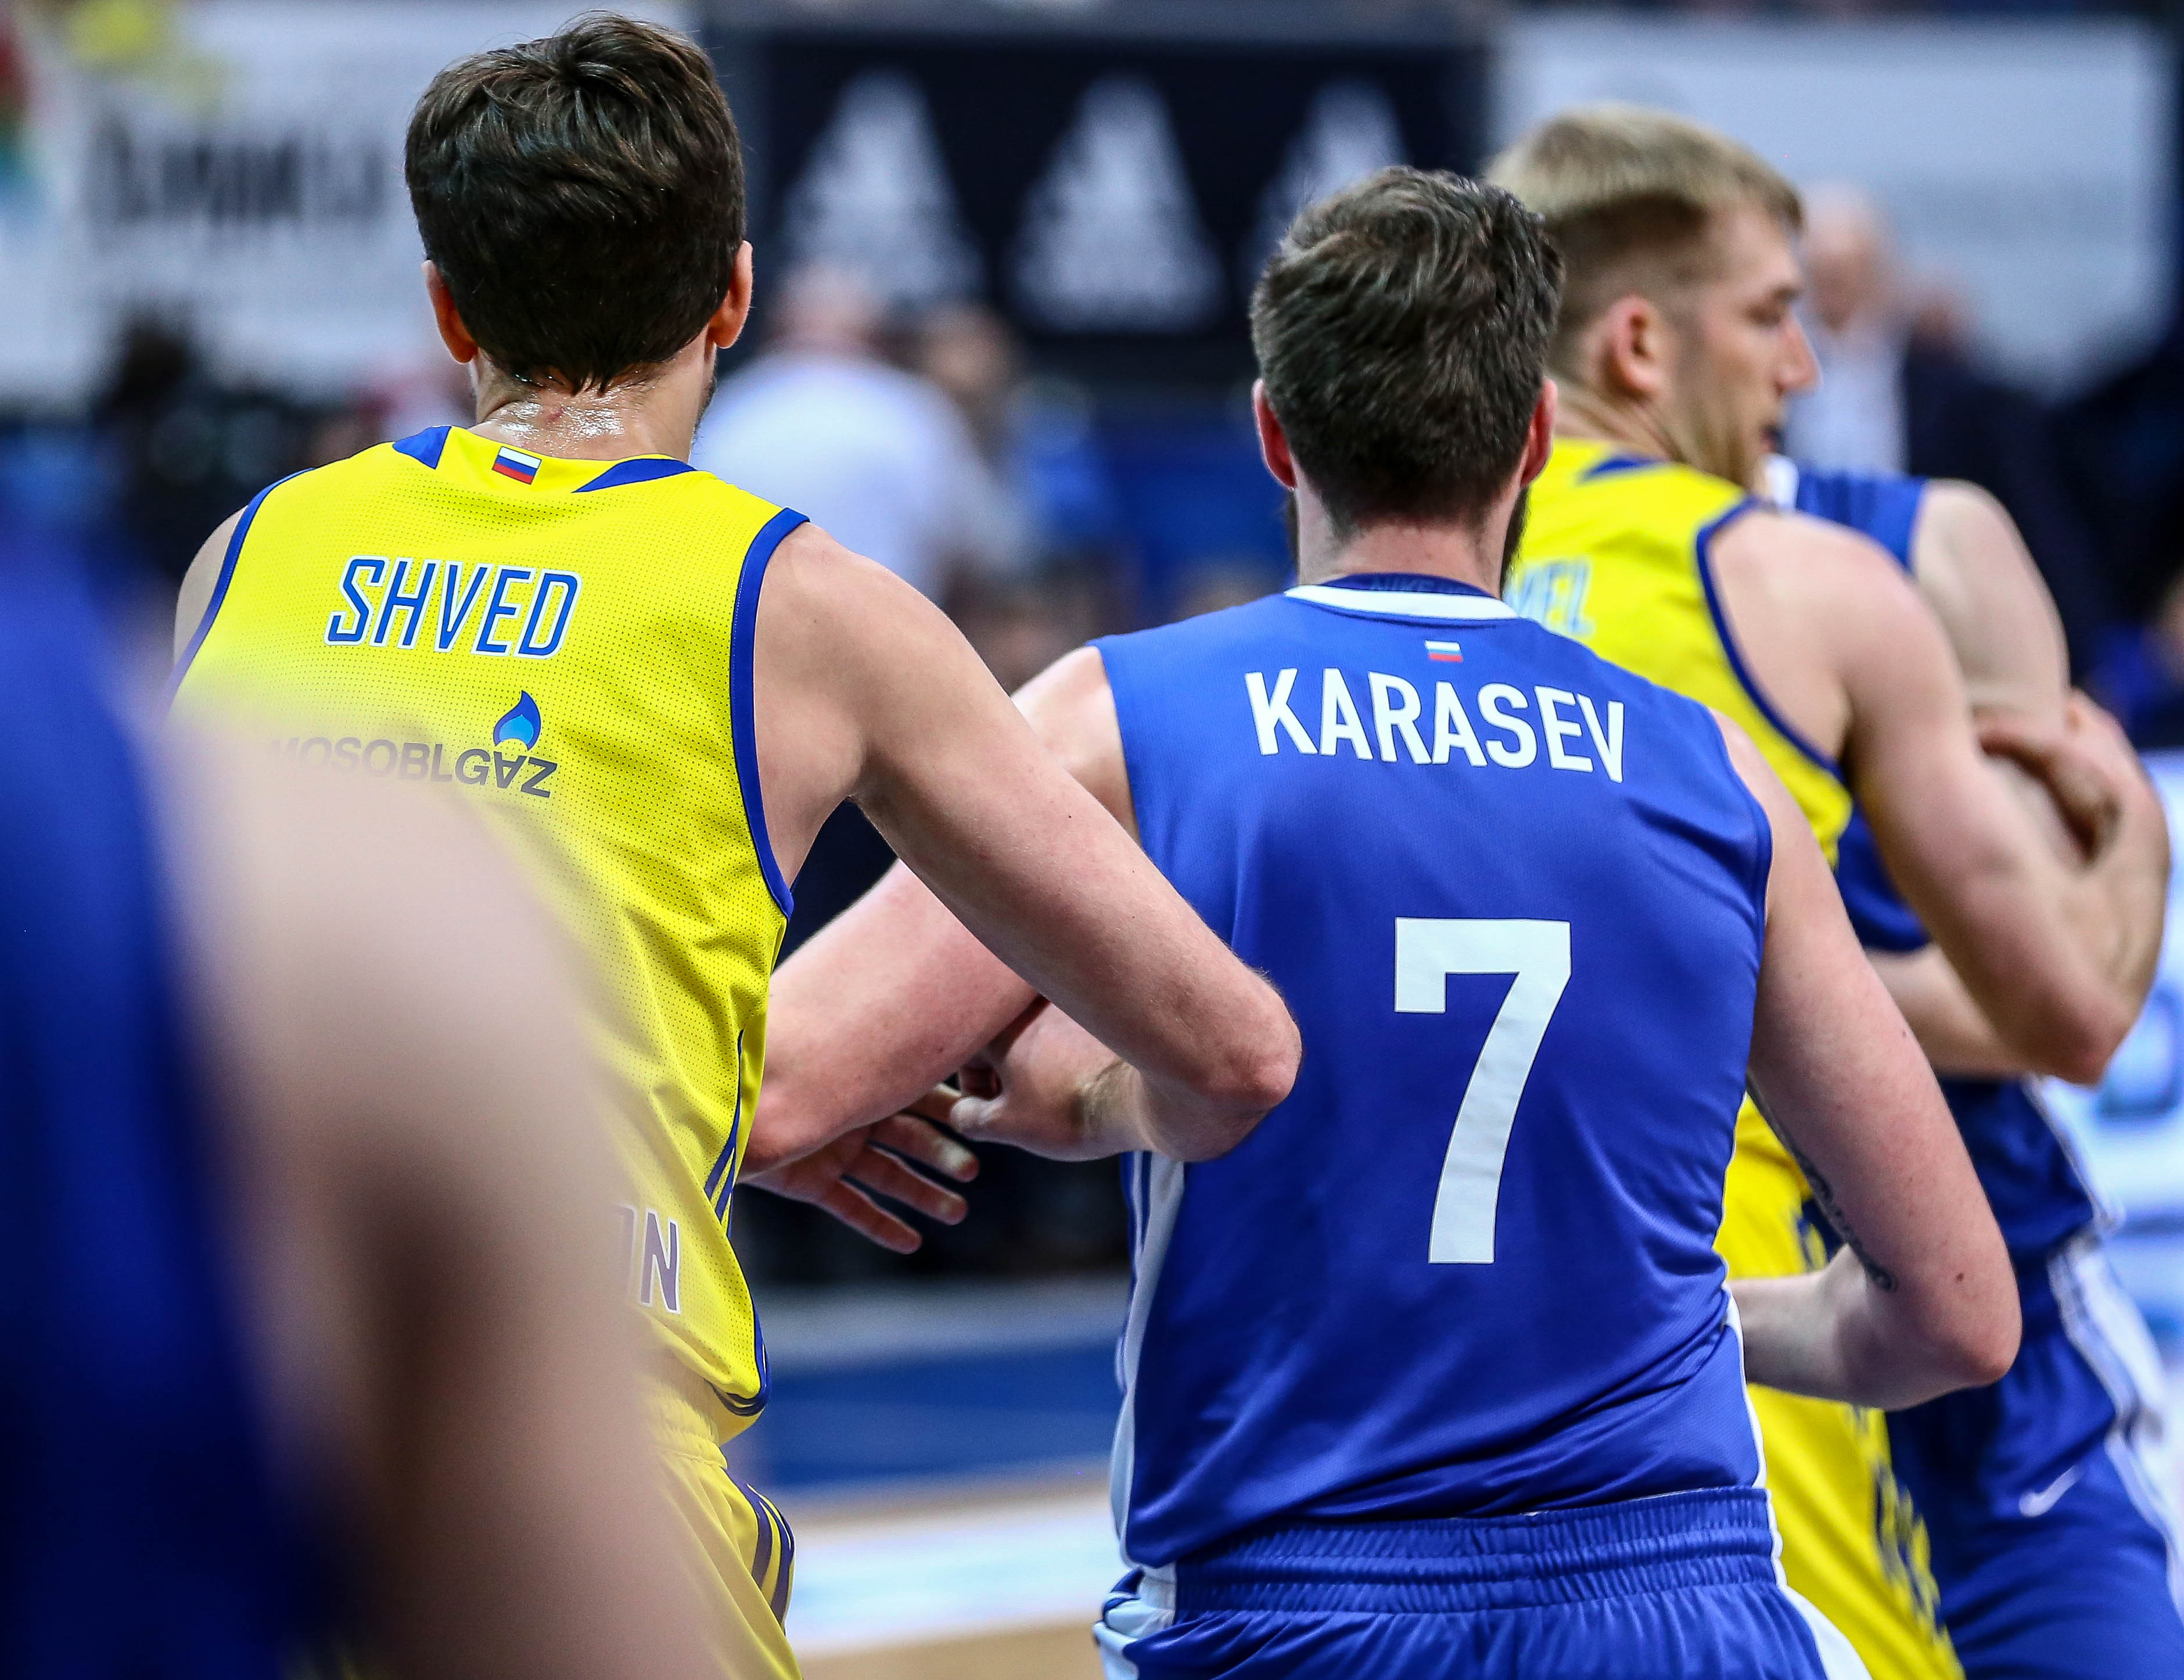 Week In Review: Karasev Bests Shved, Markovic Wins March MVP, Elegar Ties Record